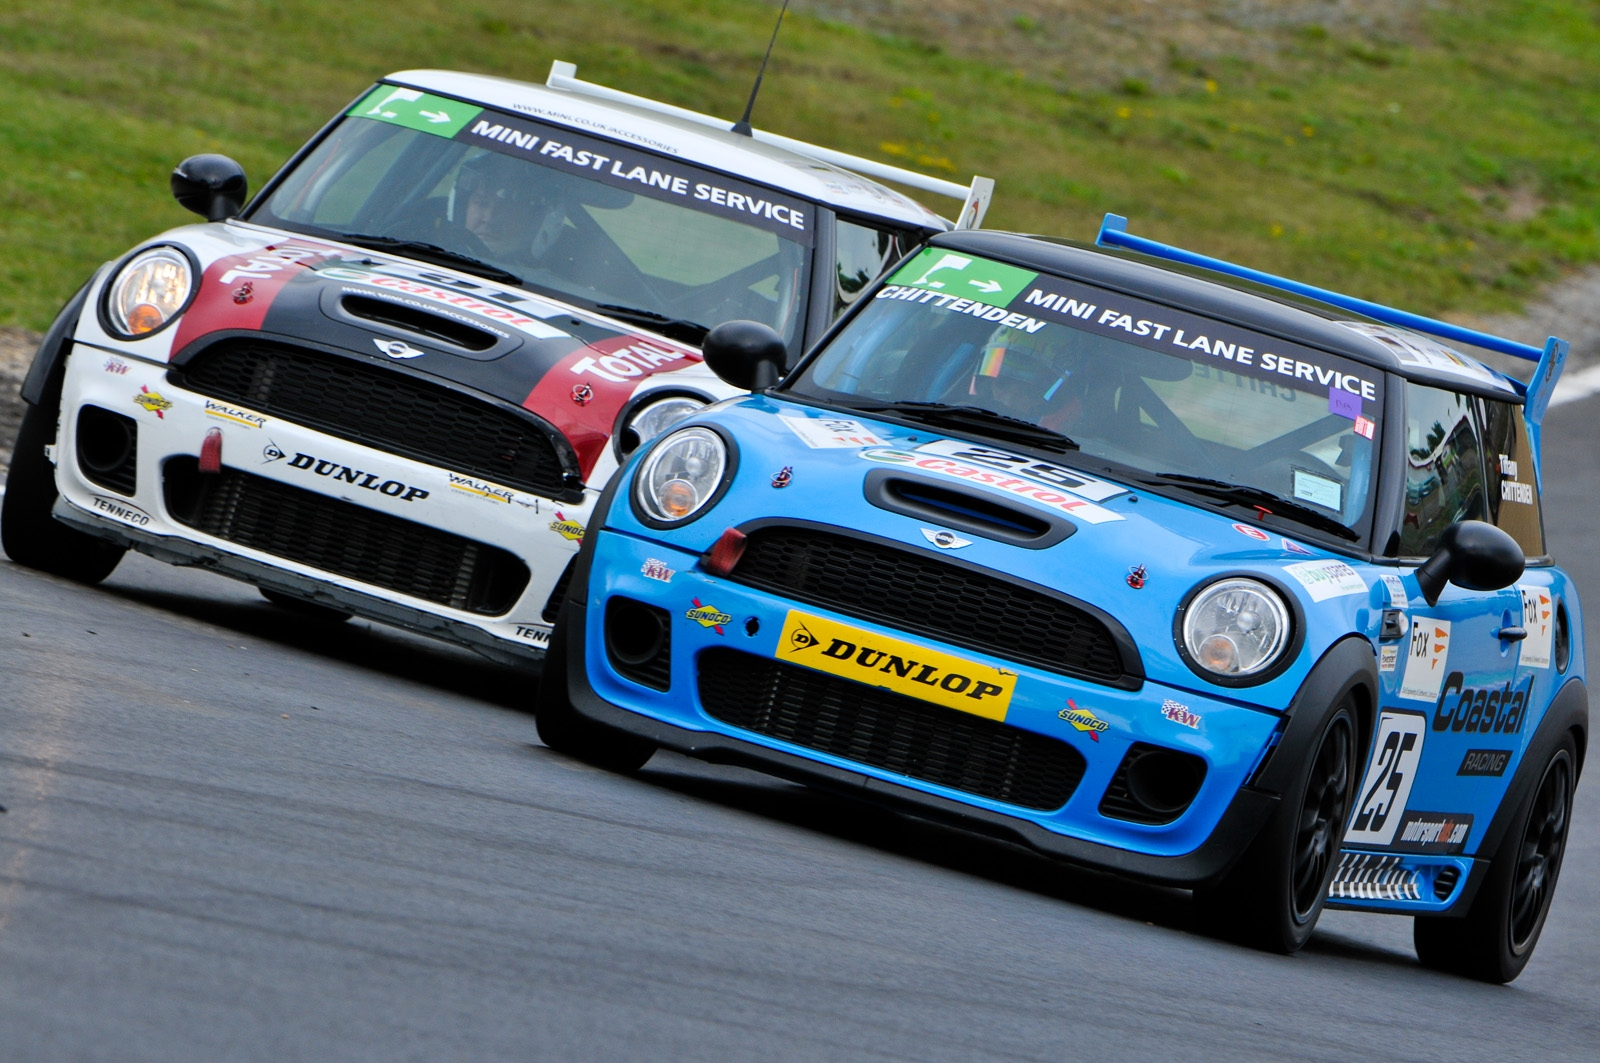 MSVR News - MINI Challenge 'try out' day at Brands Hatch